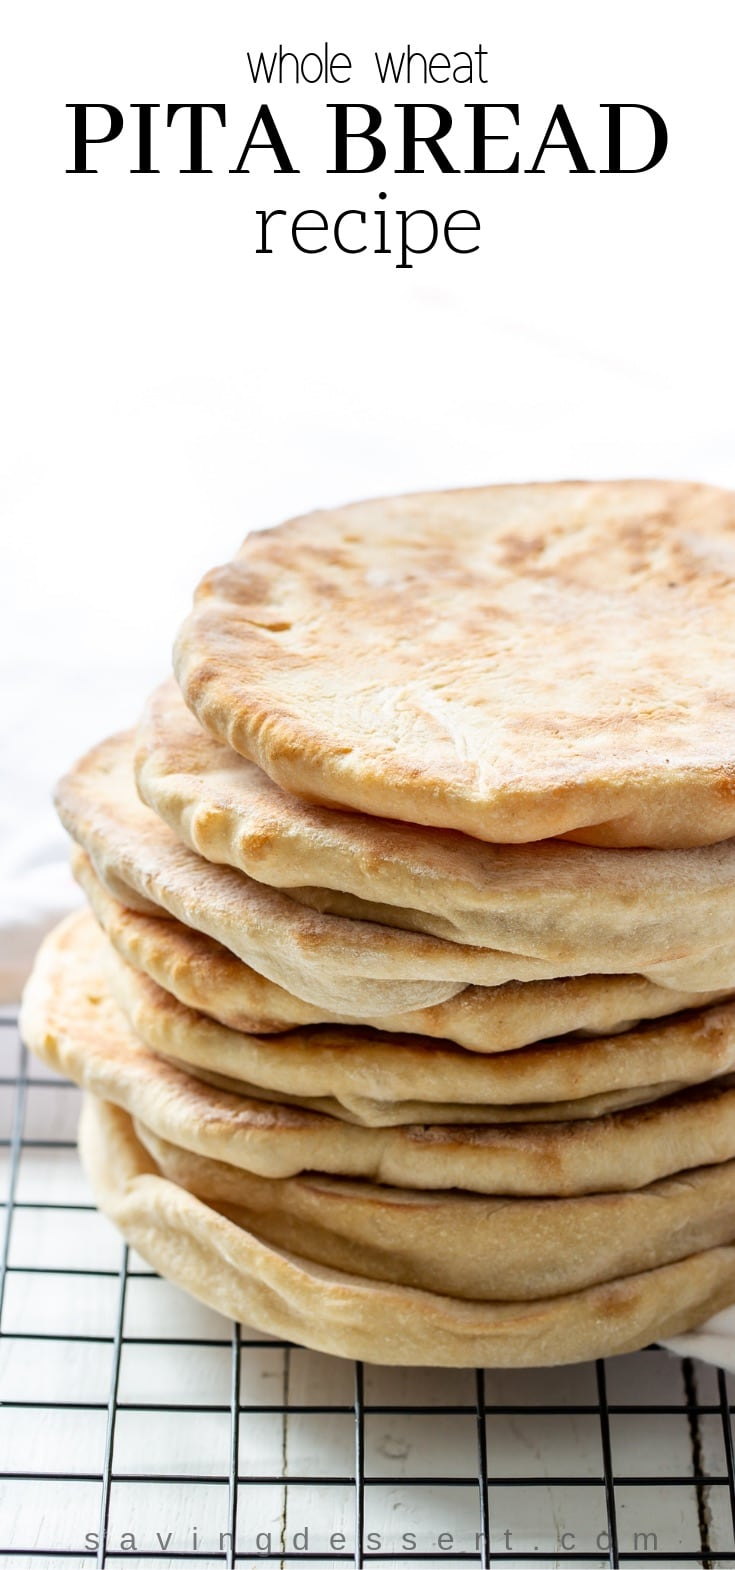 Try this easy homemade whole wheat pita recipe next time you crave tender, chewy pitas with a touch of honey for sweetness. #pitabread #pitarecipe #pita #flatbread #middleeasternbread #Greekfood #easypitabread #howtomakepitabread #pitabreadrecipe